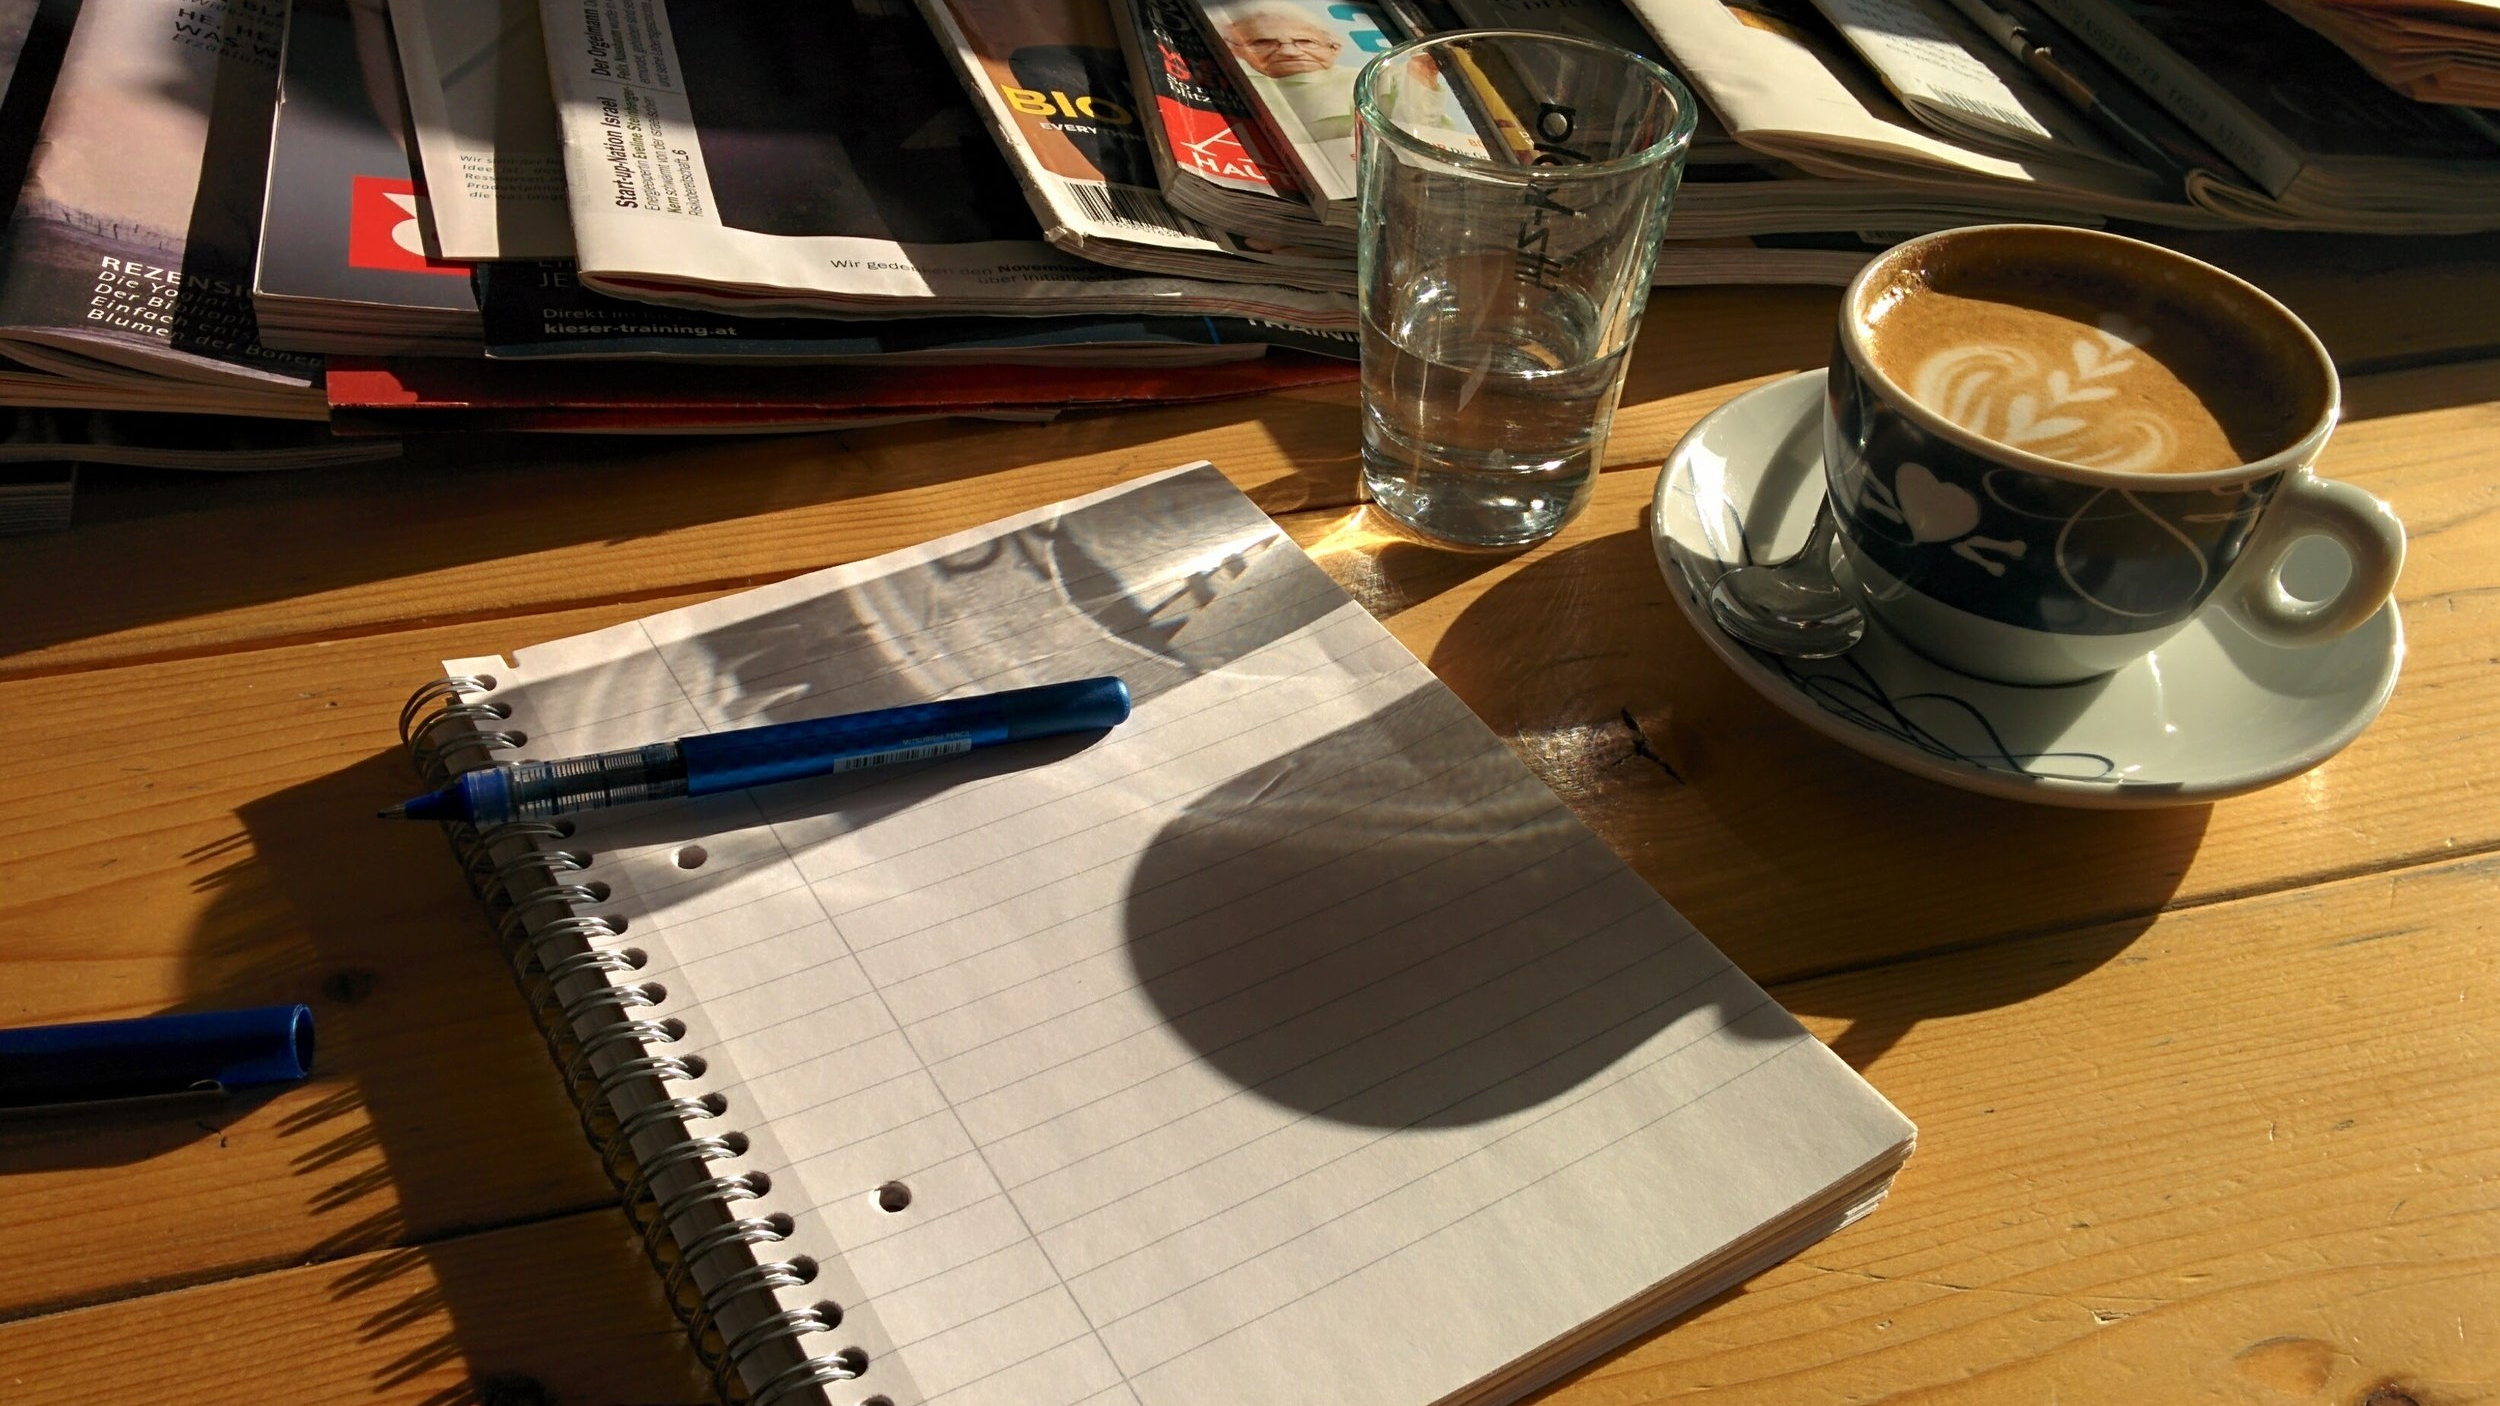 Coffee, water and a notepad